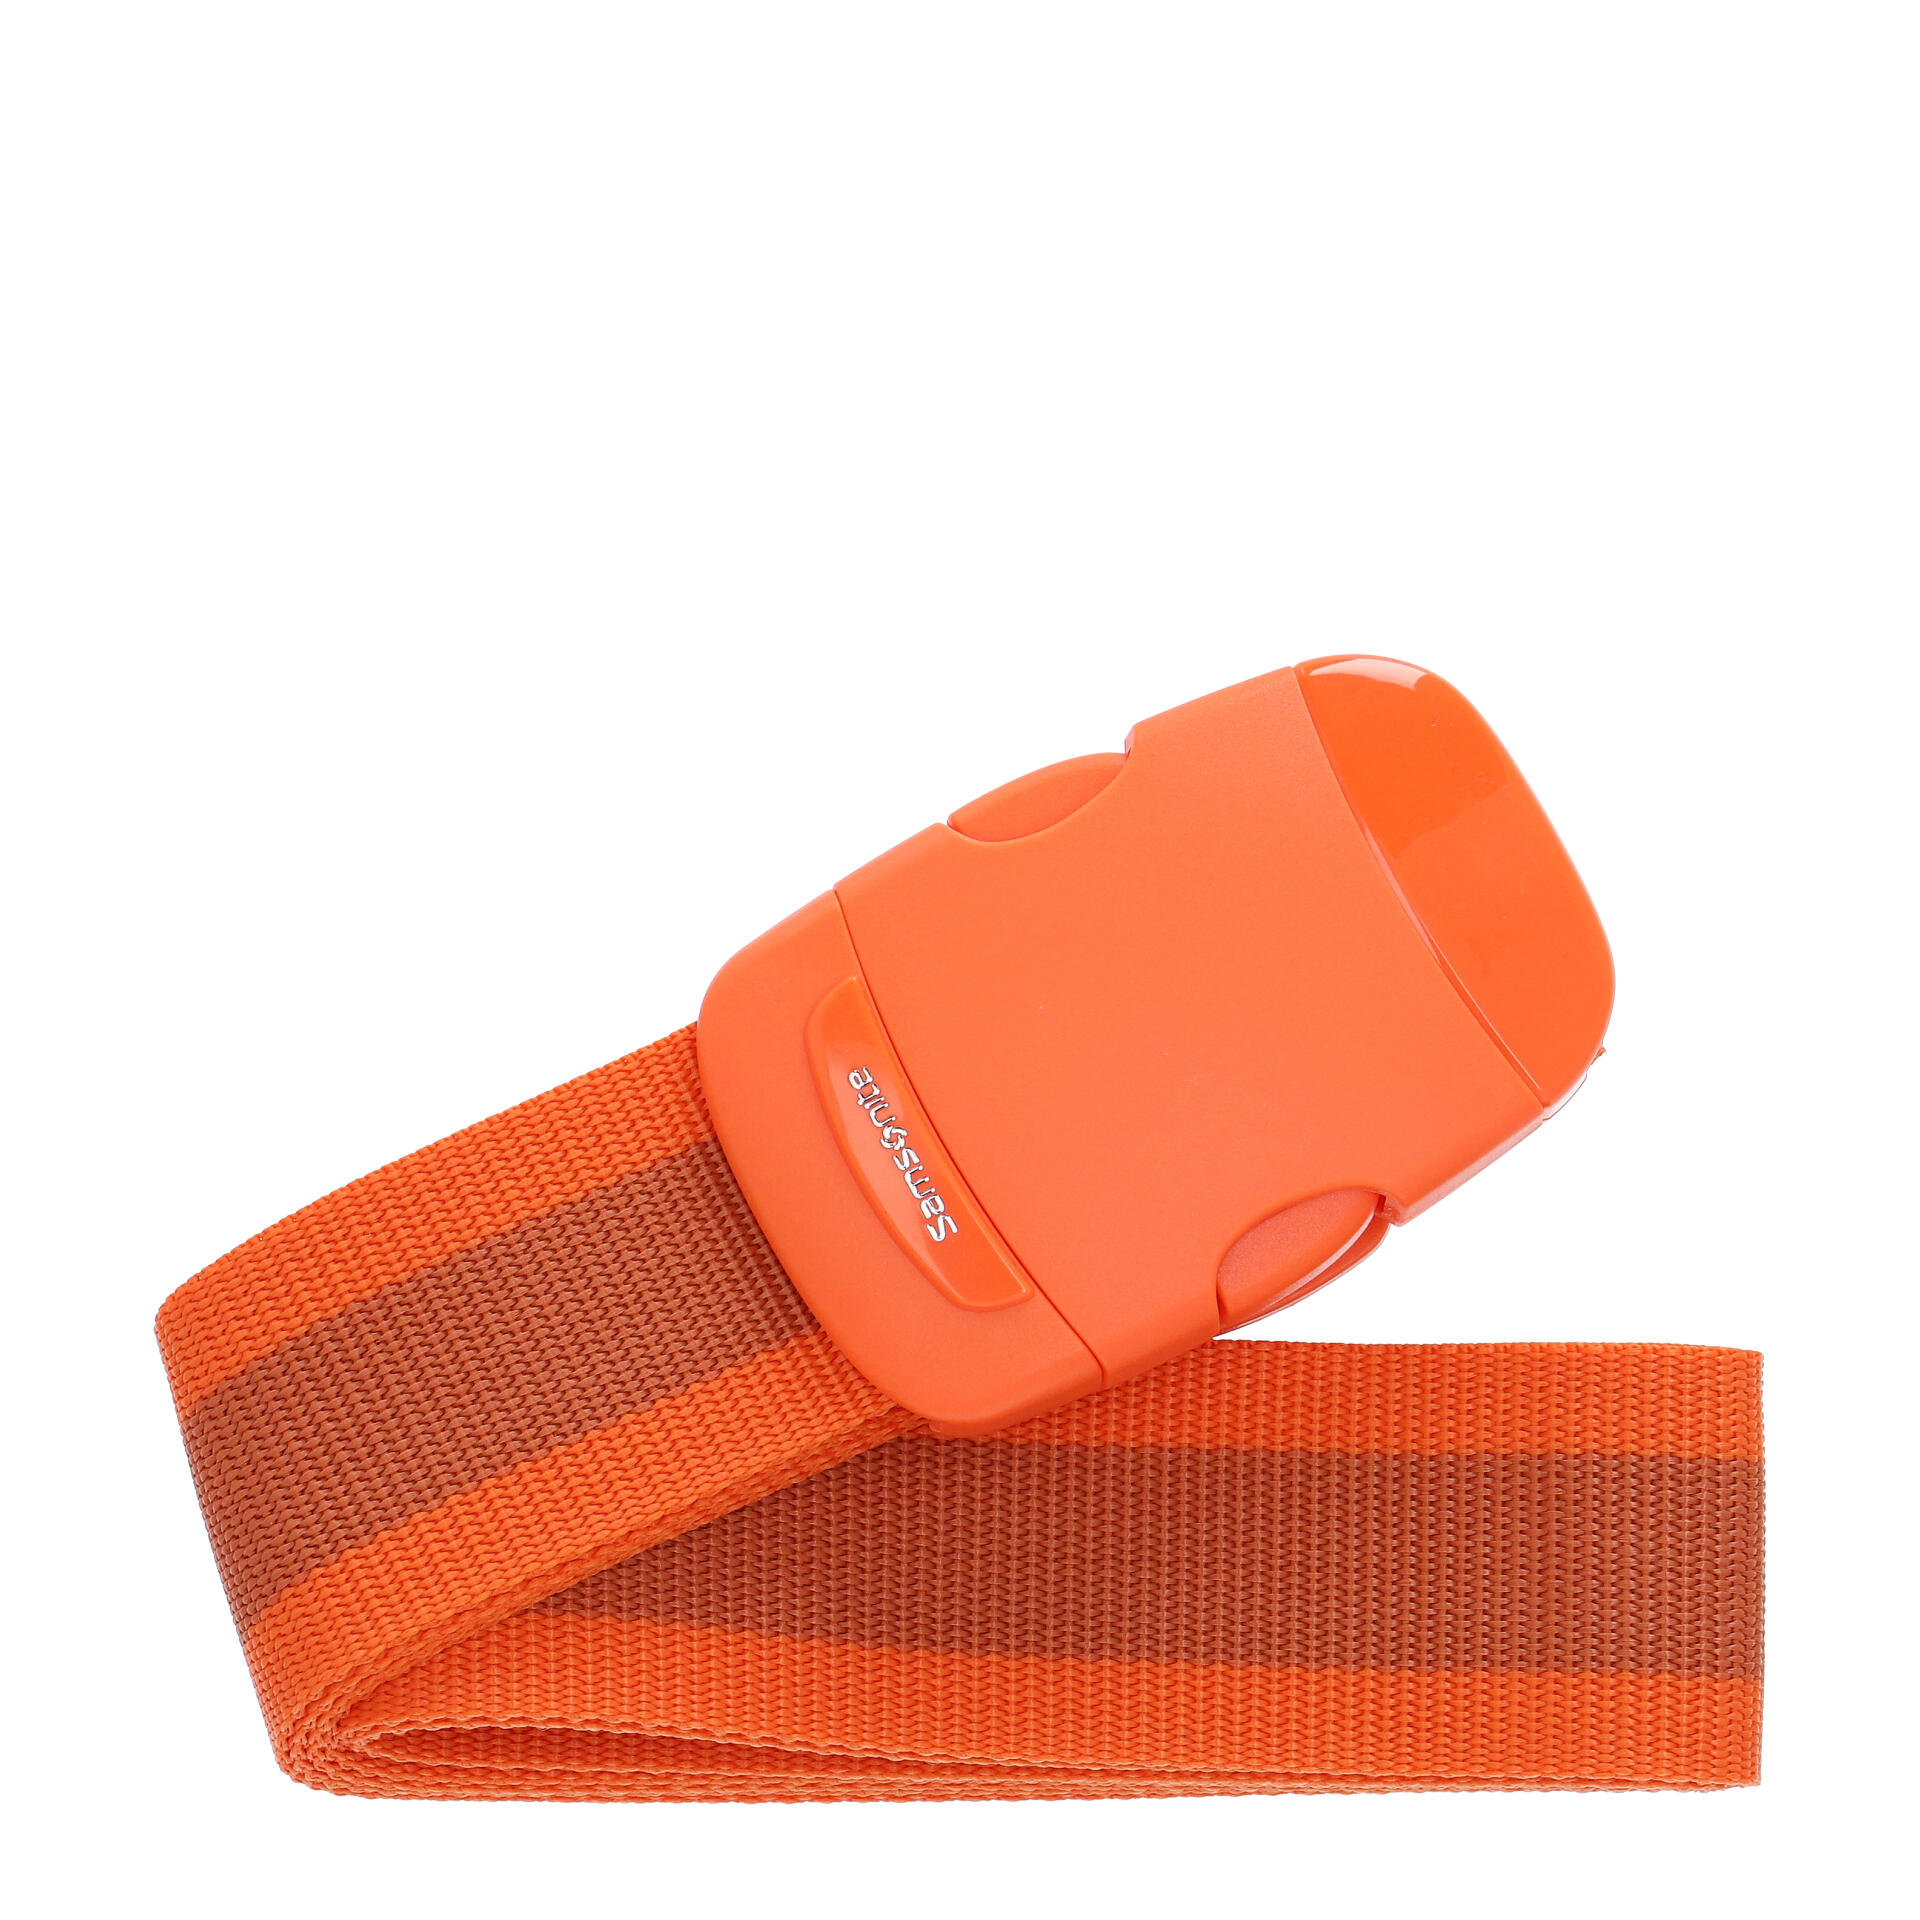 Global Travel Accessories Kofferband orange